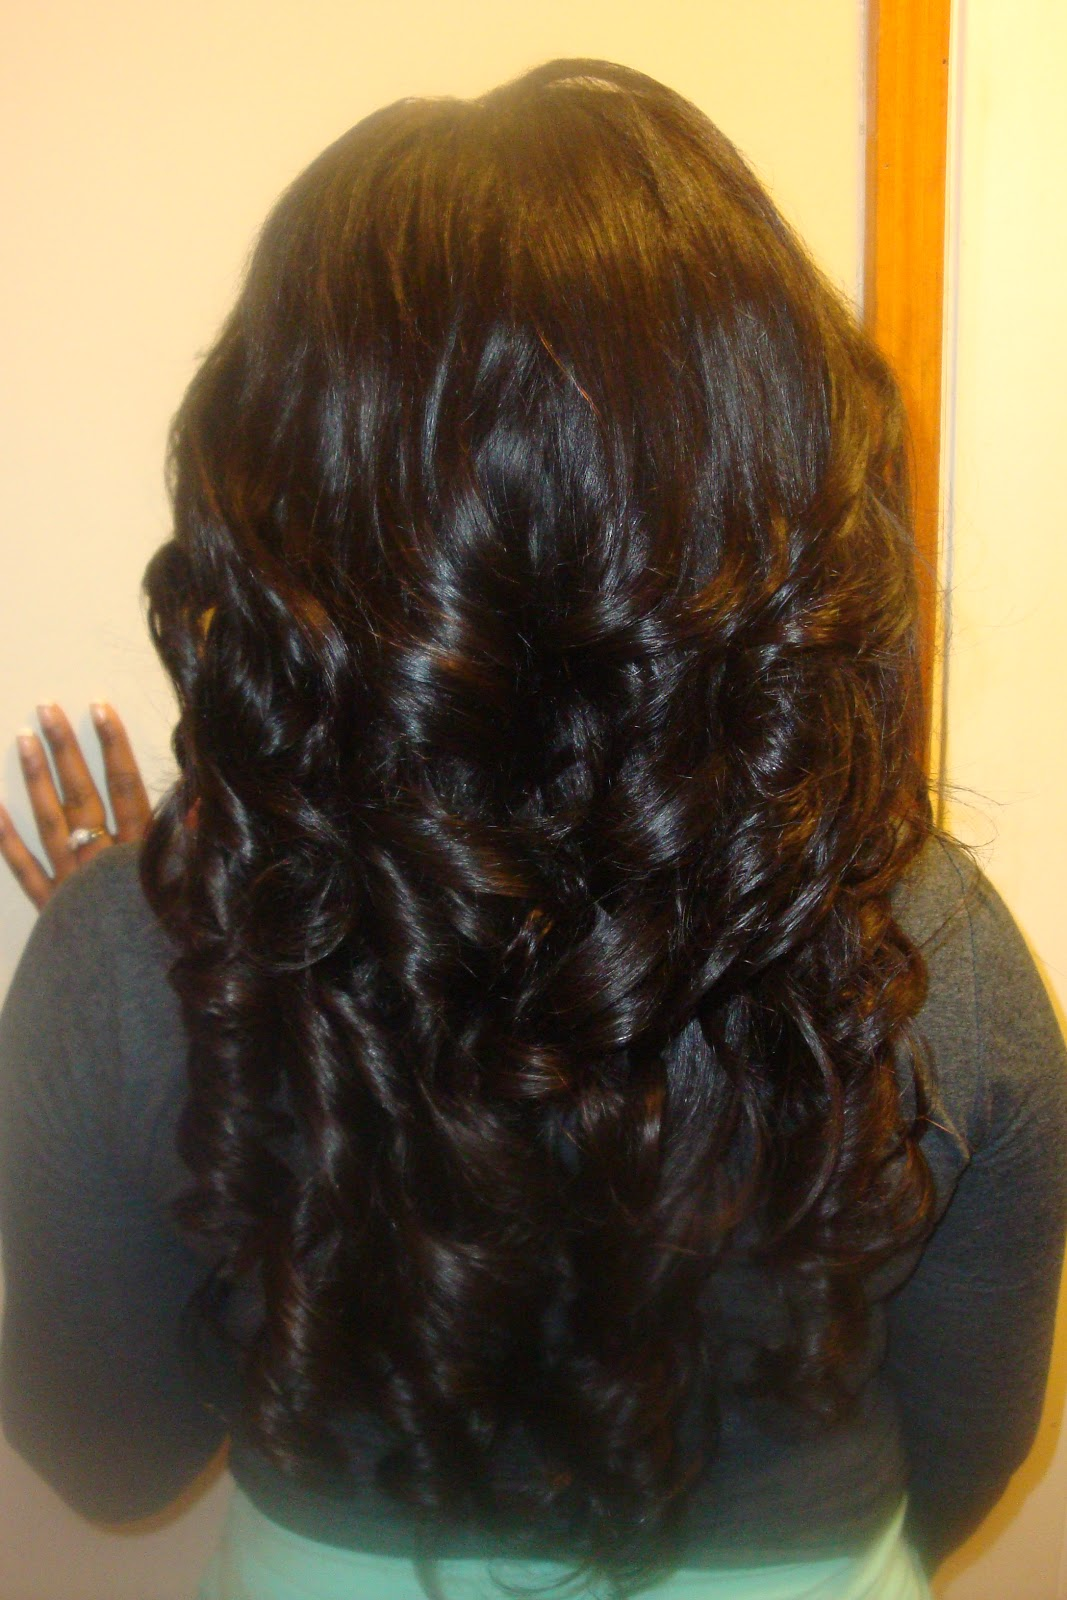 ... ULTIMATE HAIR DESIGNS: Layers, Illusion Sides (3D), Sew-Ins and Caps